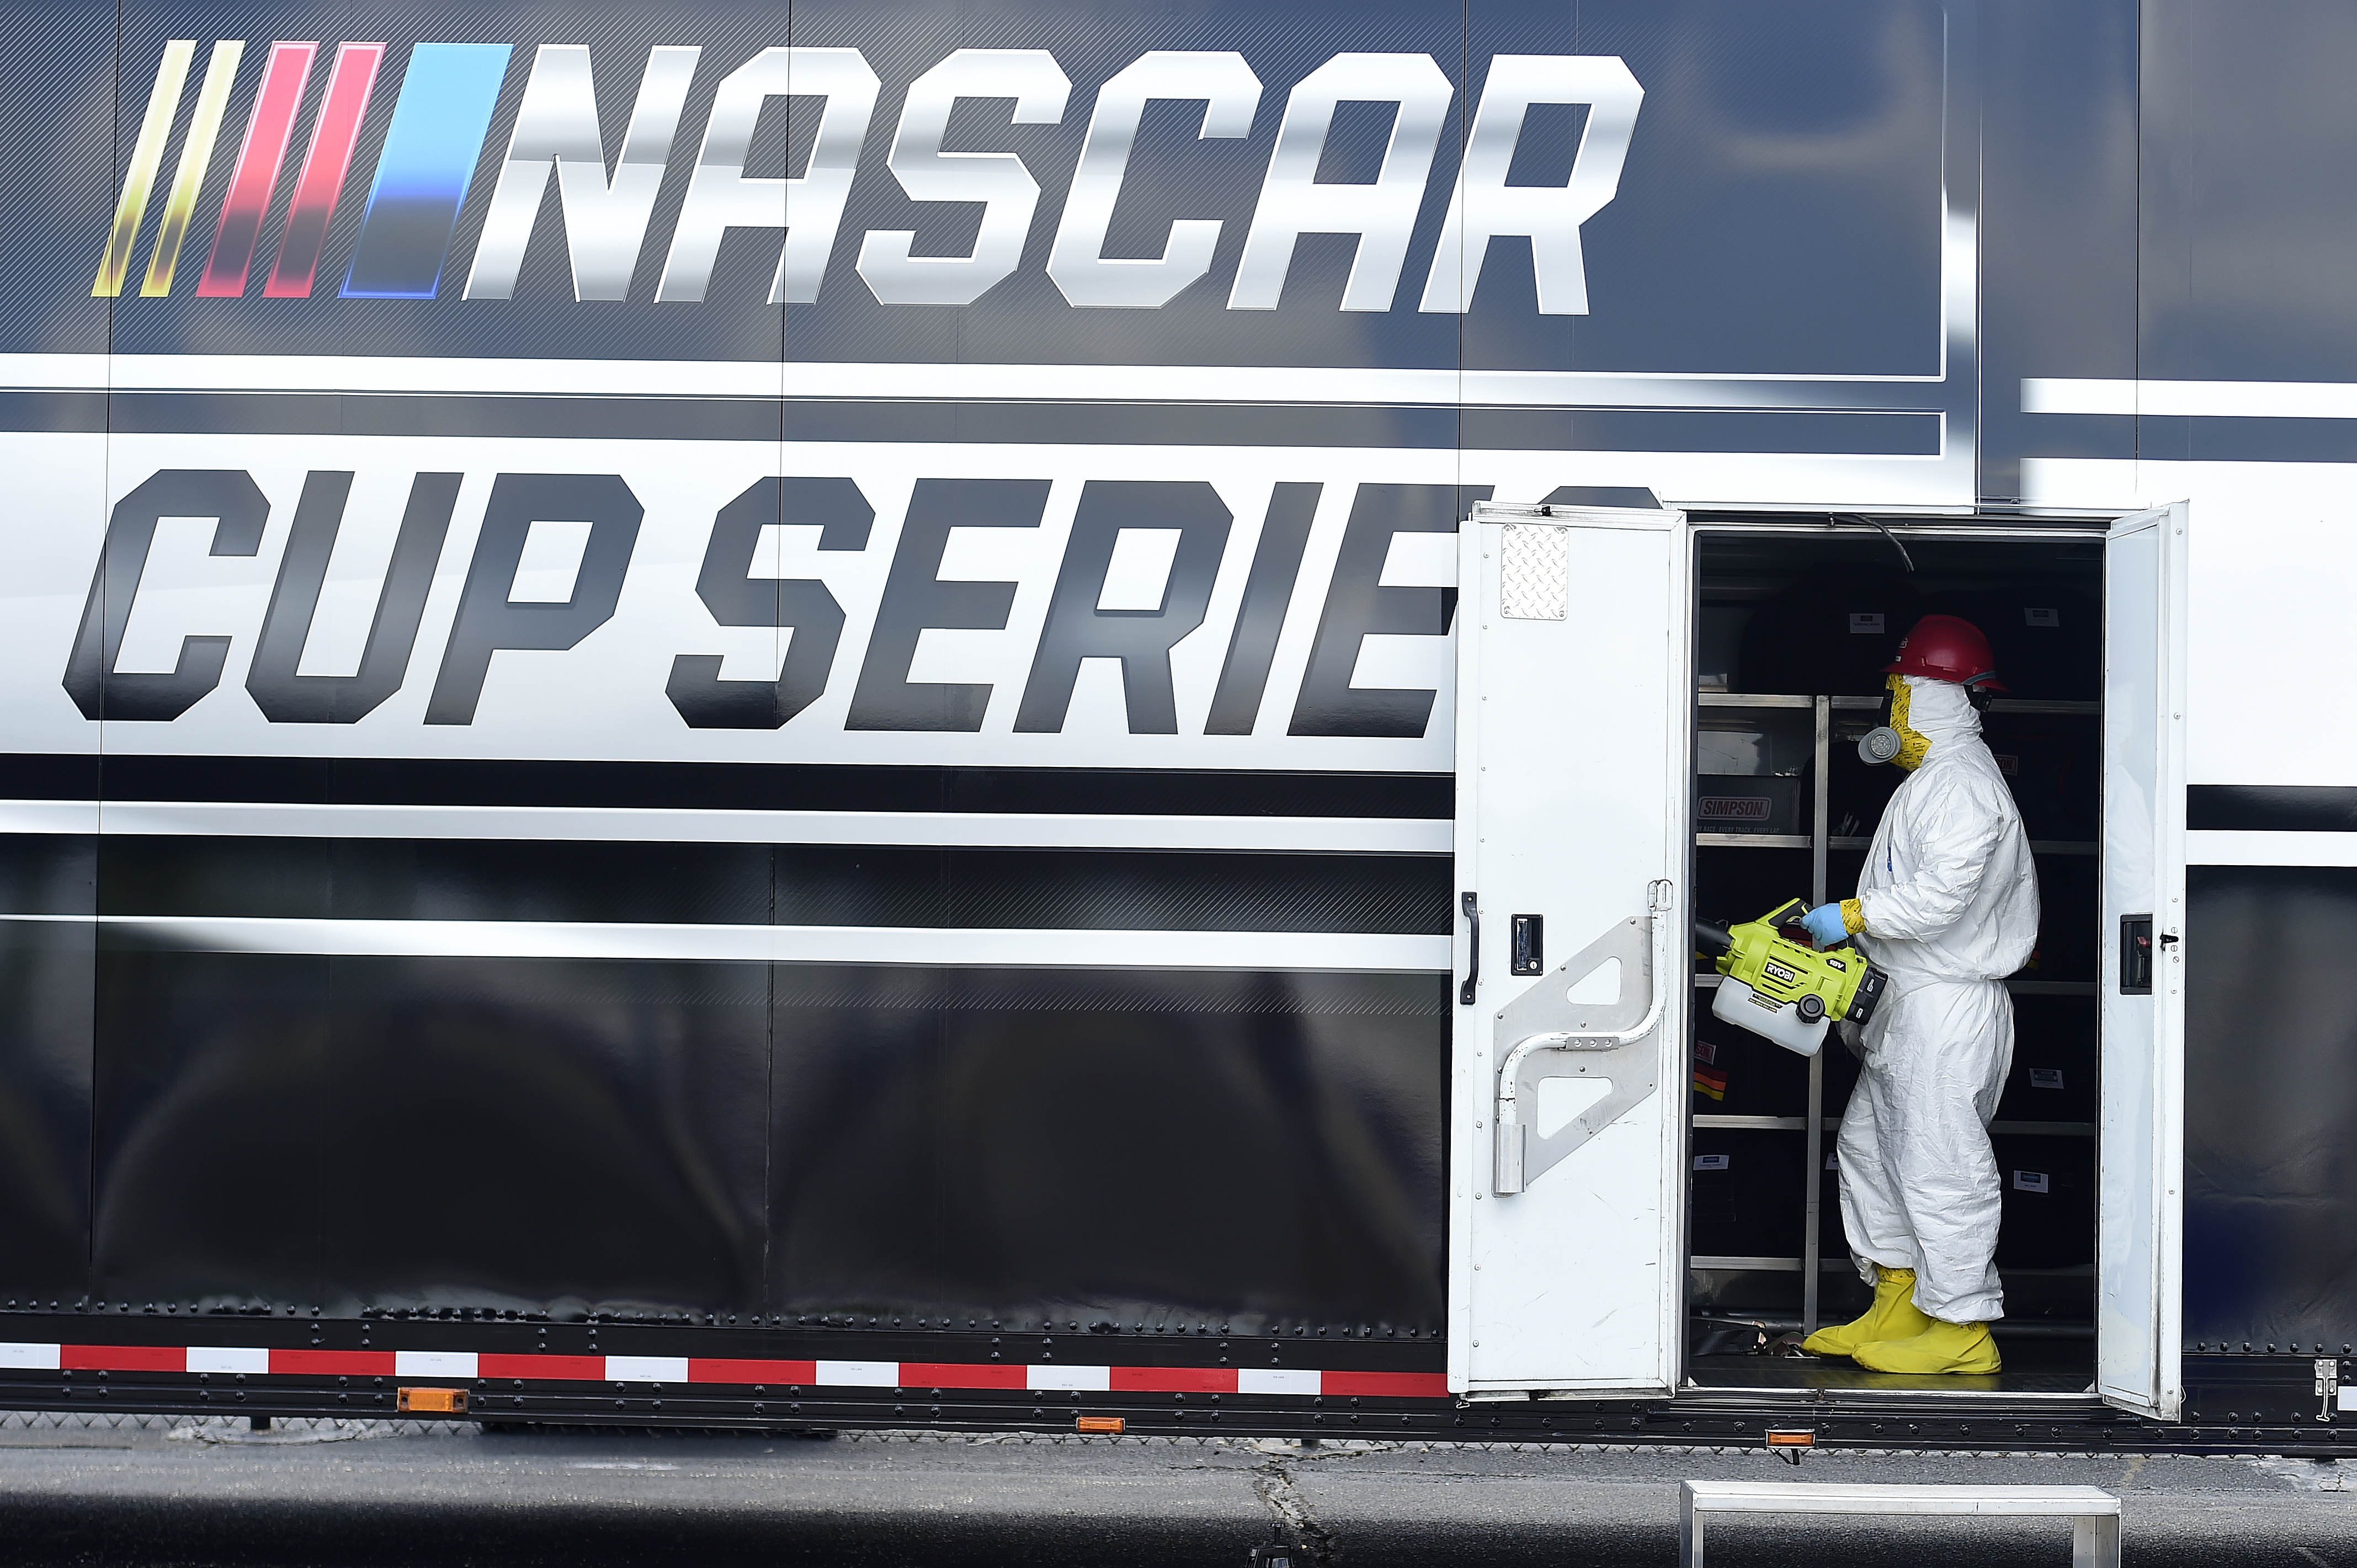 NASCAR cleaning